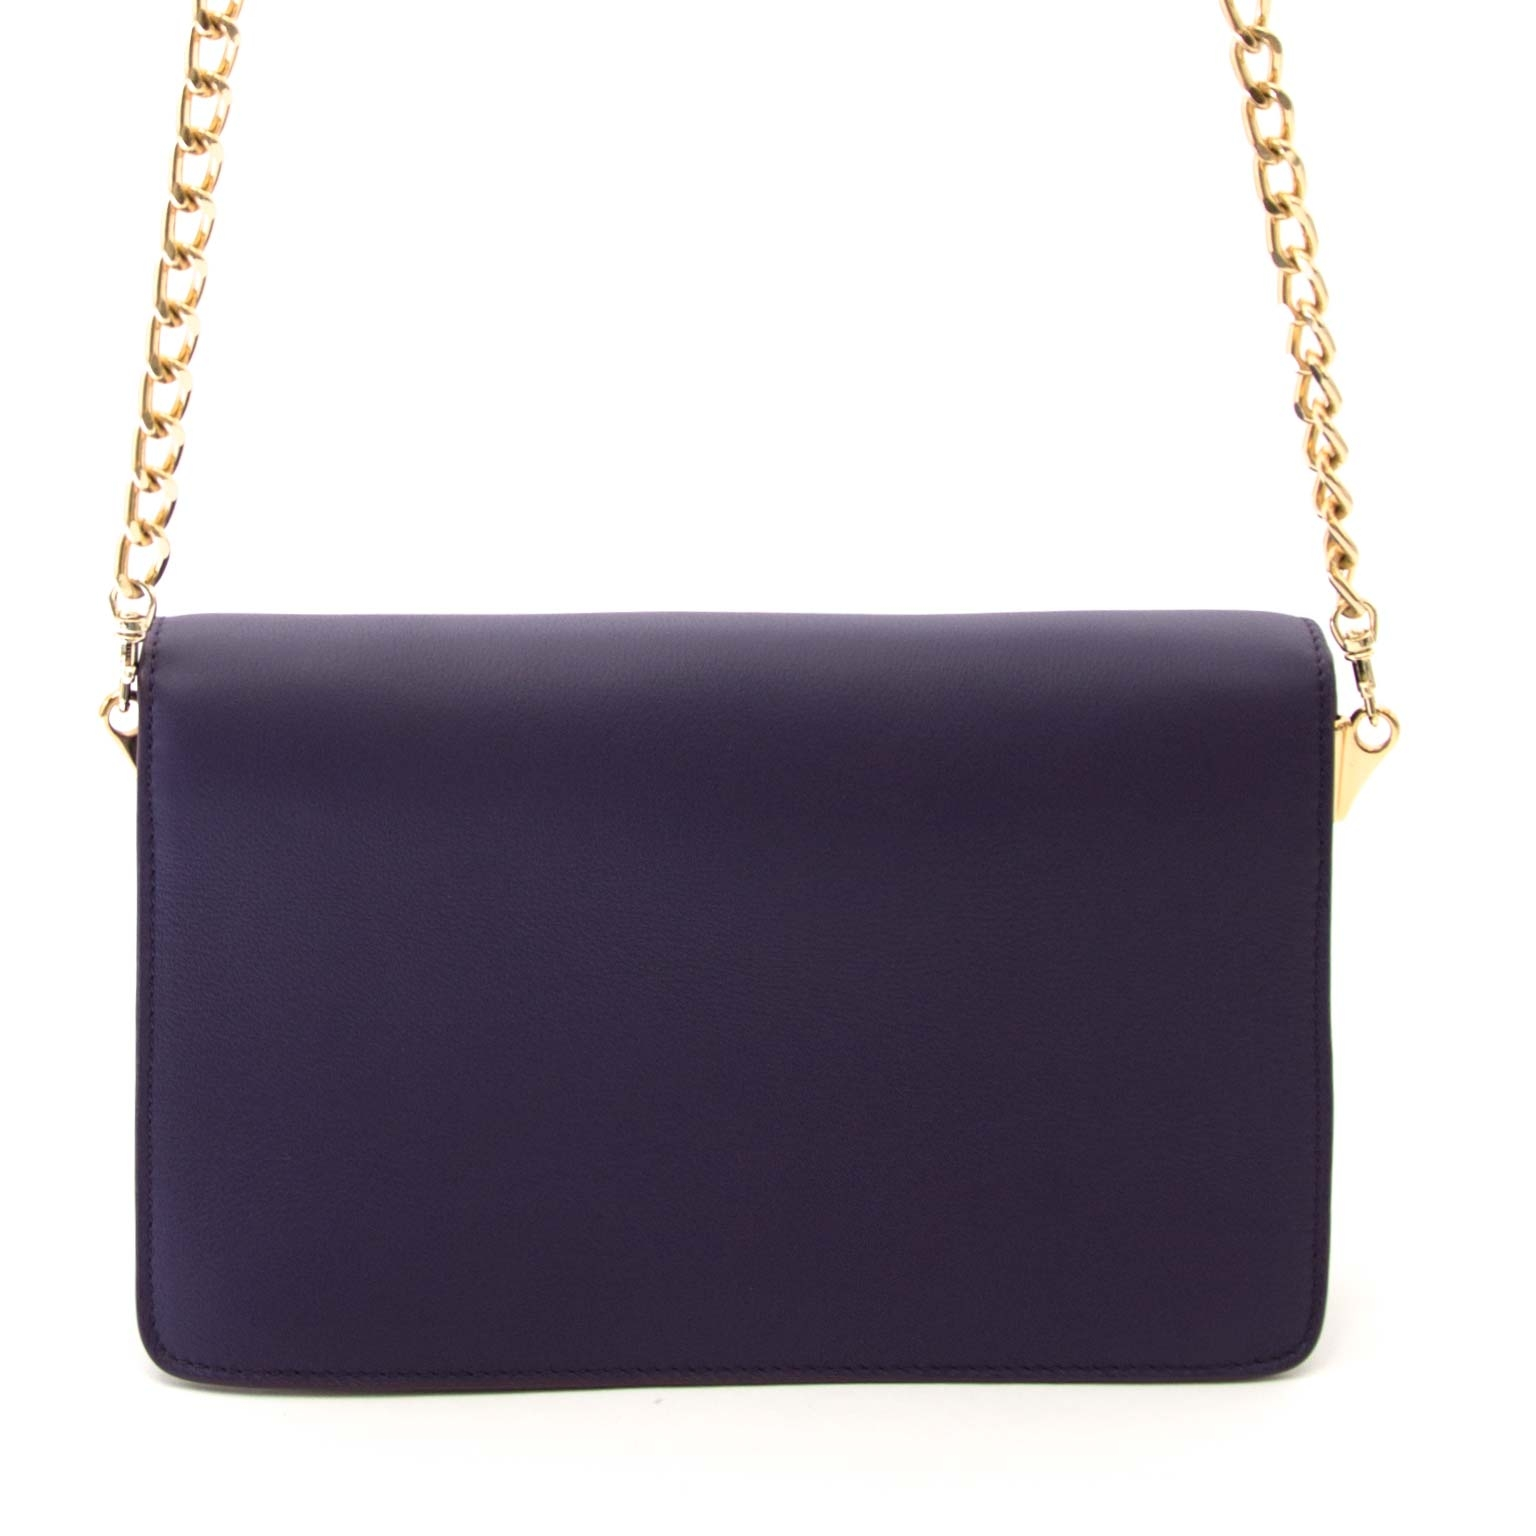 buy JW Anderson Purple Logo Purse Bag at labellov for the best price